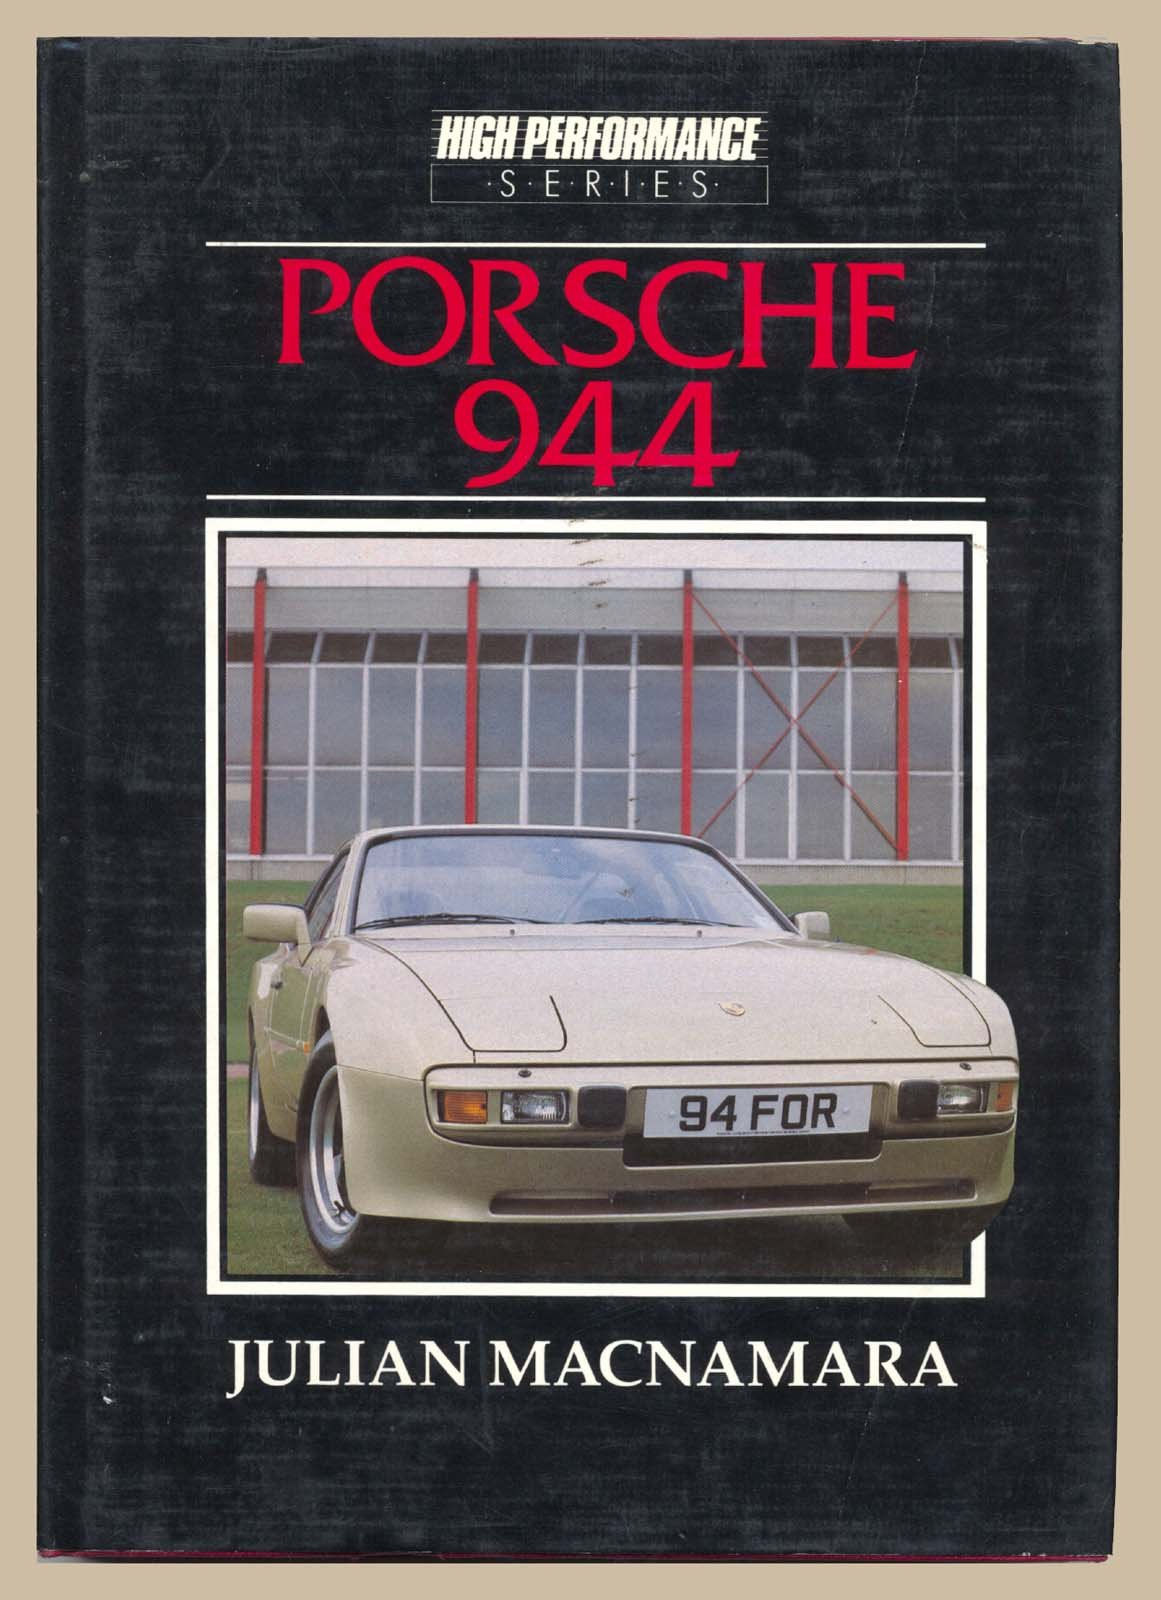 Porsche 944 (High performance series): Amazon.es: Julian MacNamara: Libros